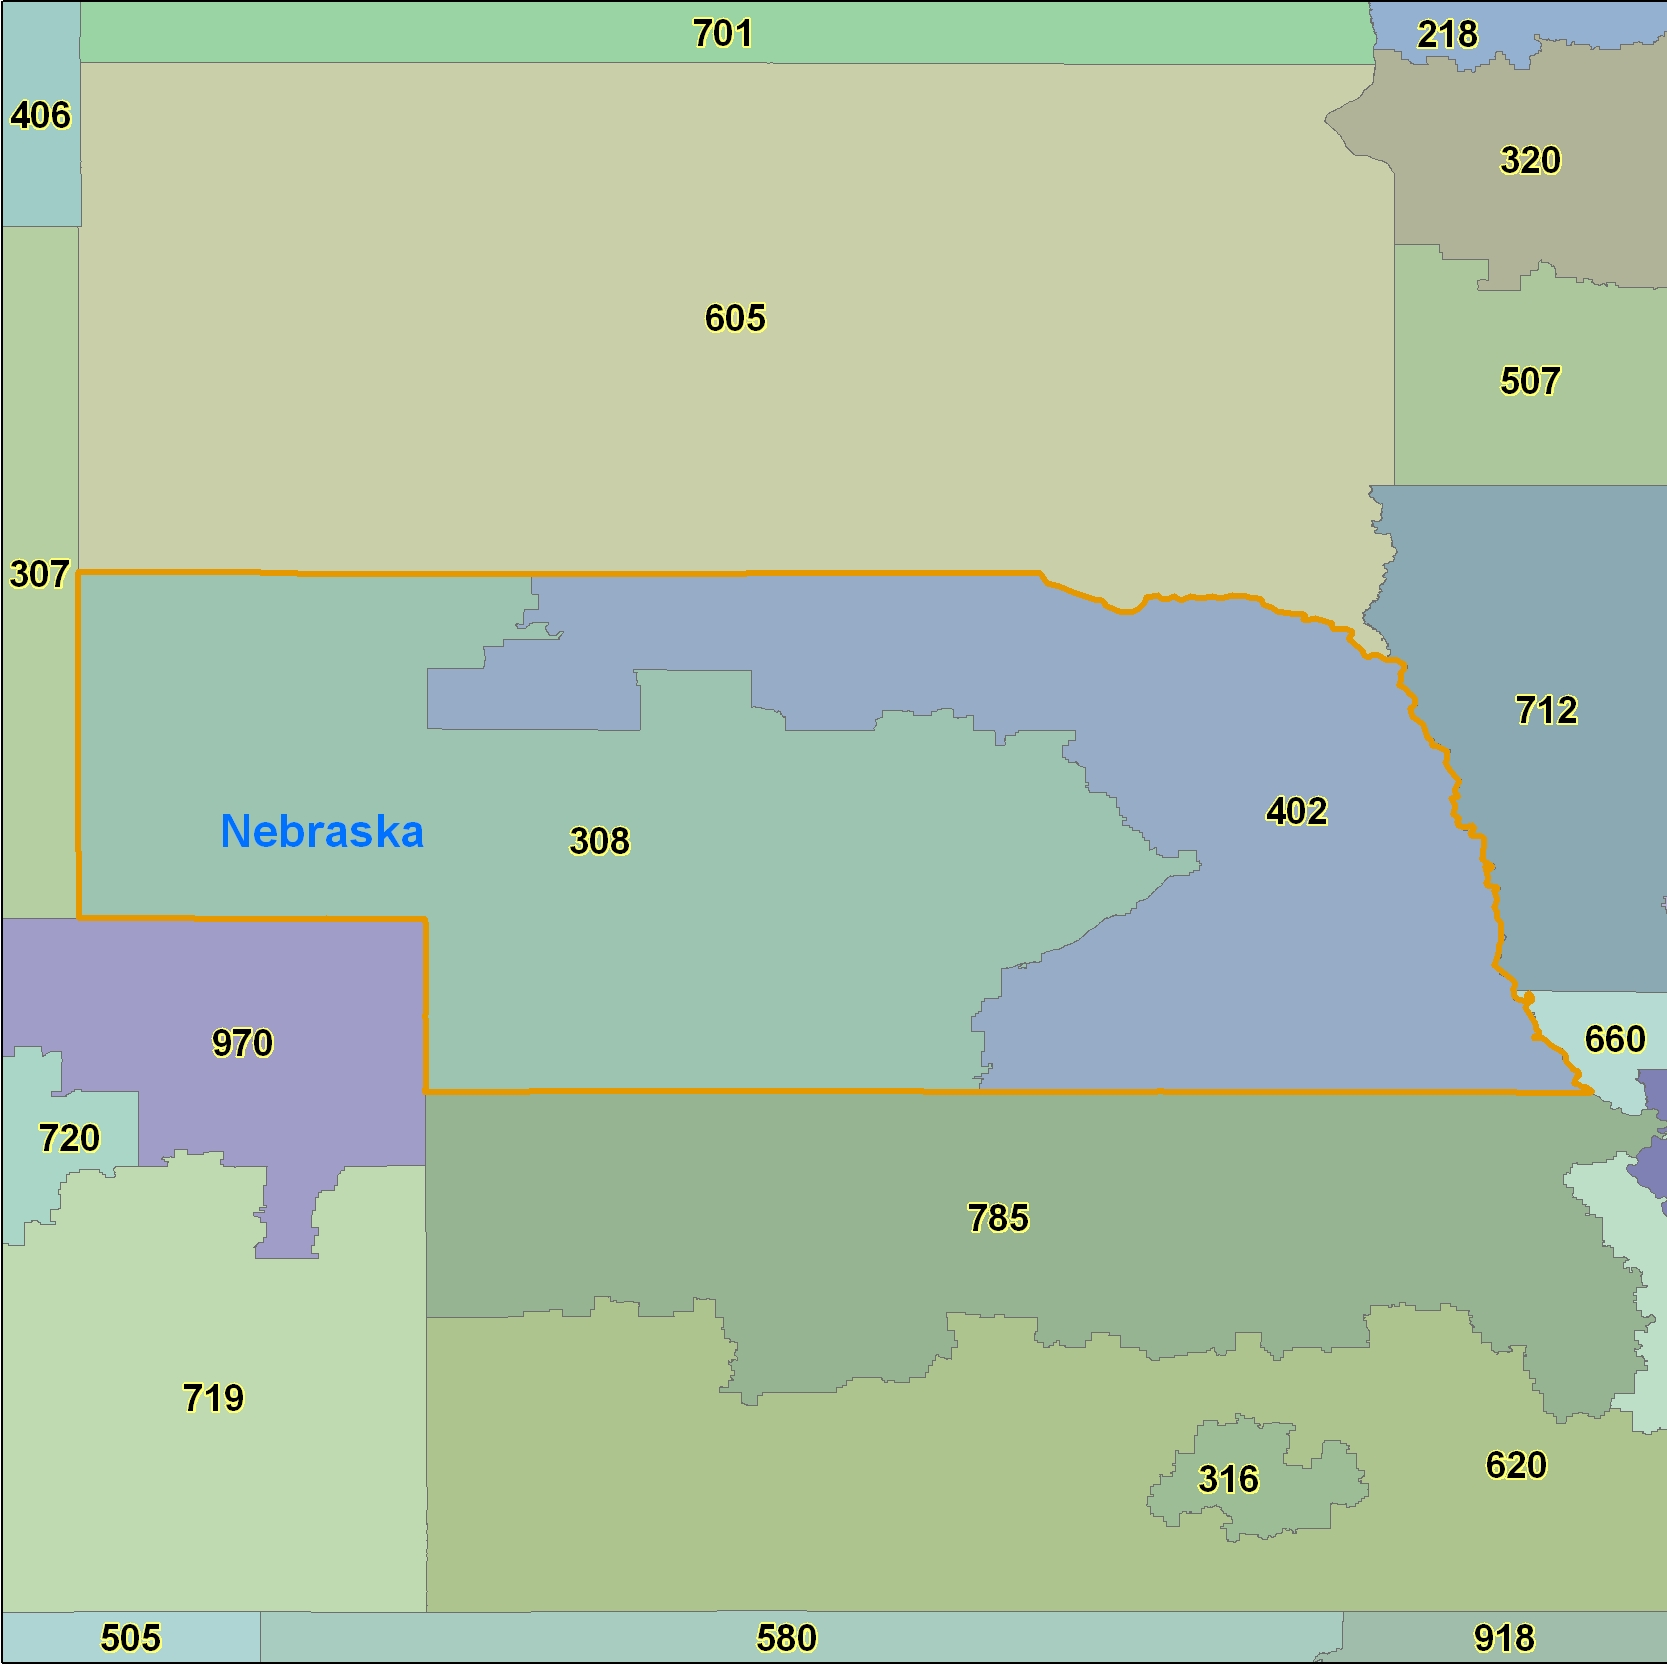 Free Nebraska Map.Nebraska Area Code Maps Nebraska Telephone Area Code Maps Free